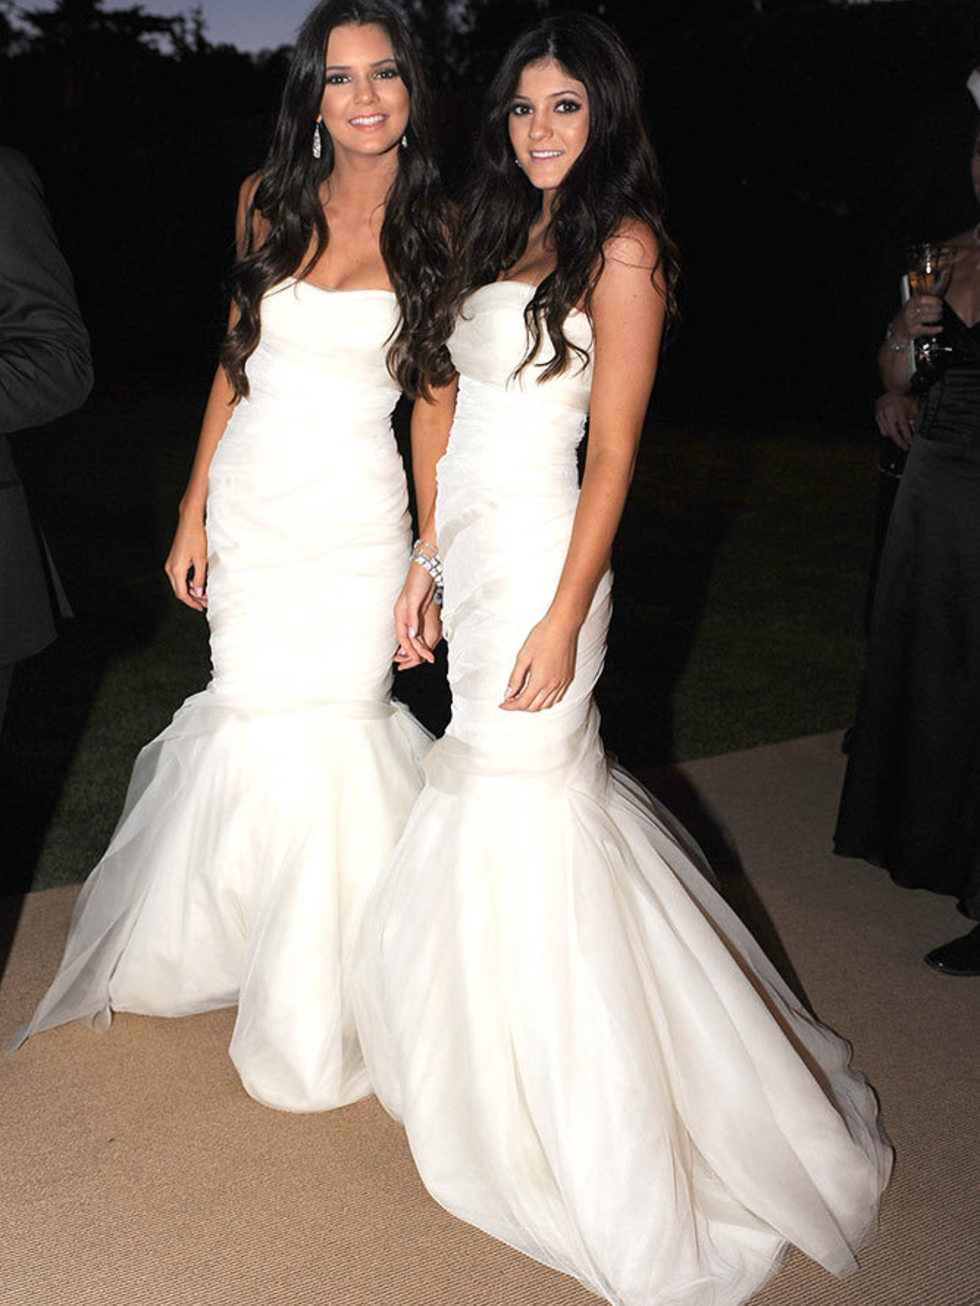 Bridesmaid dresses for celebrities lifestyle wedding ombrellifo Image collections